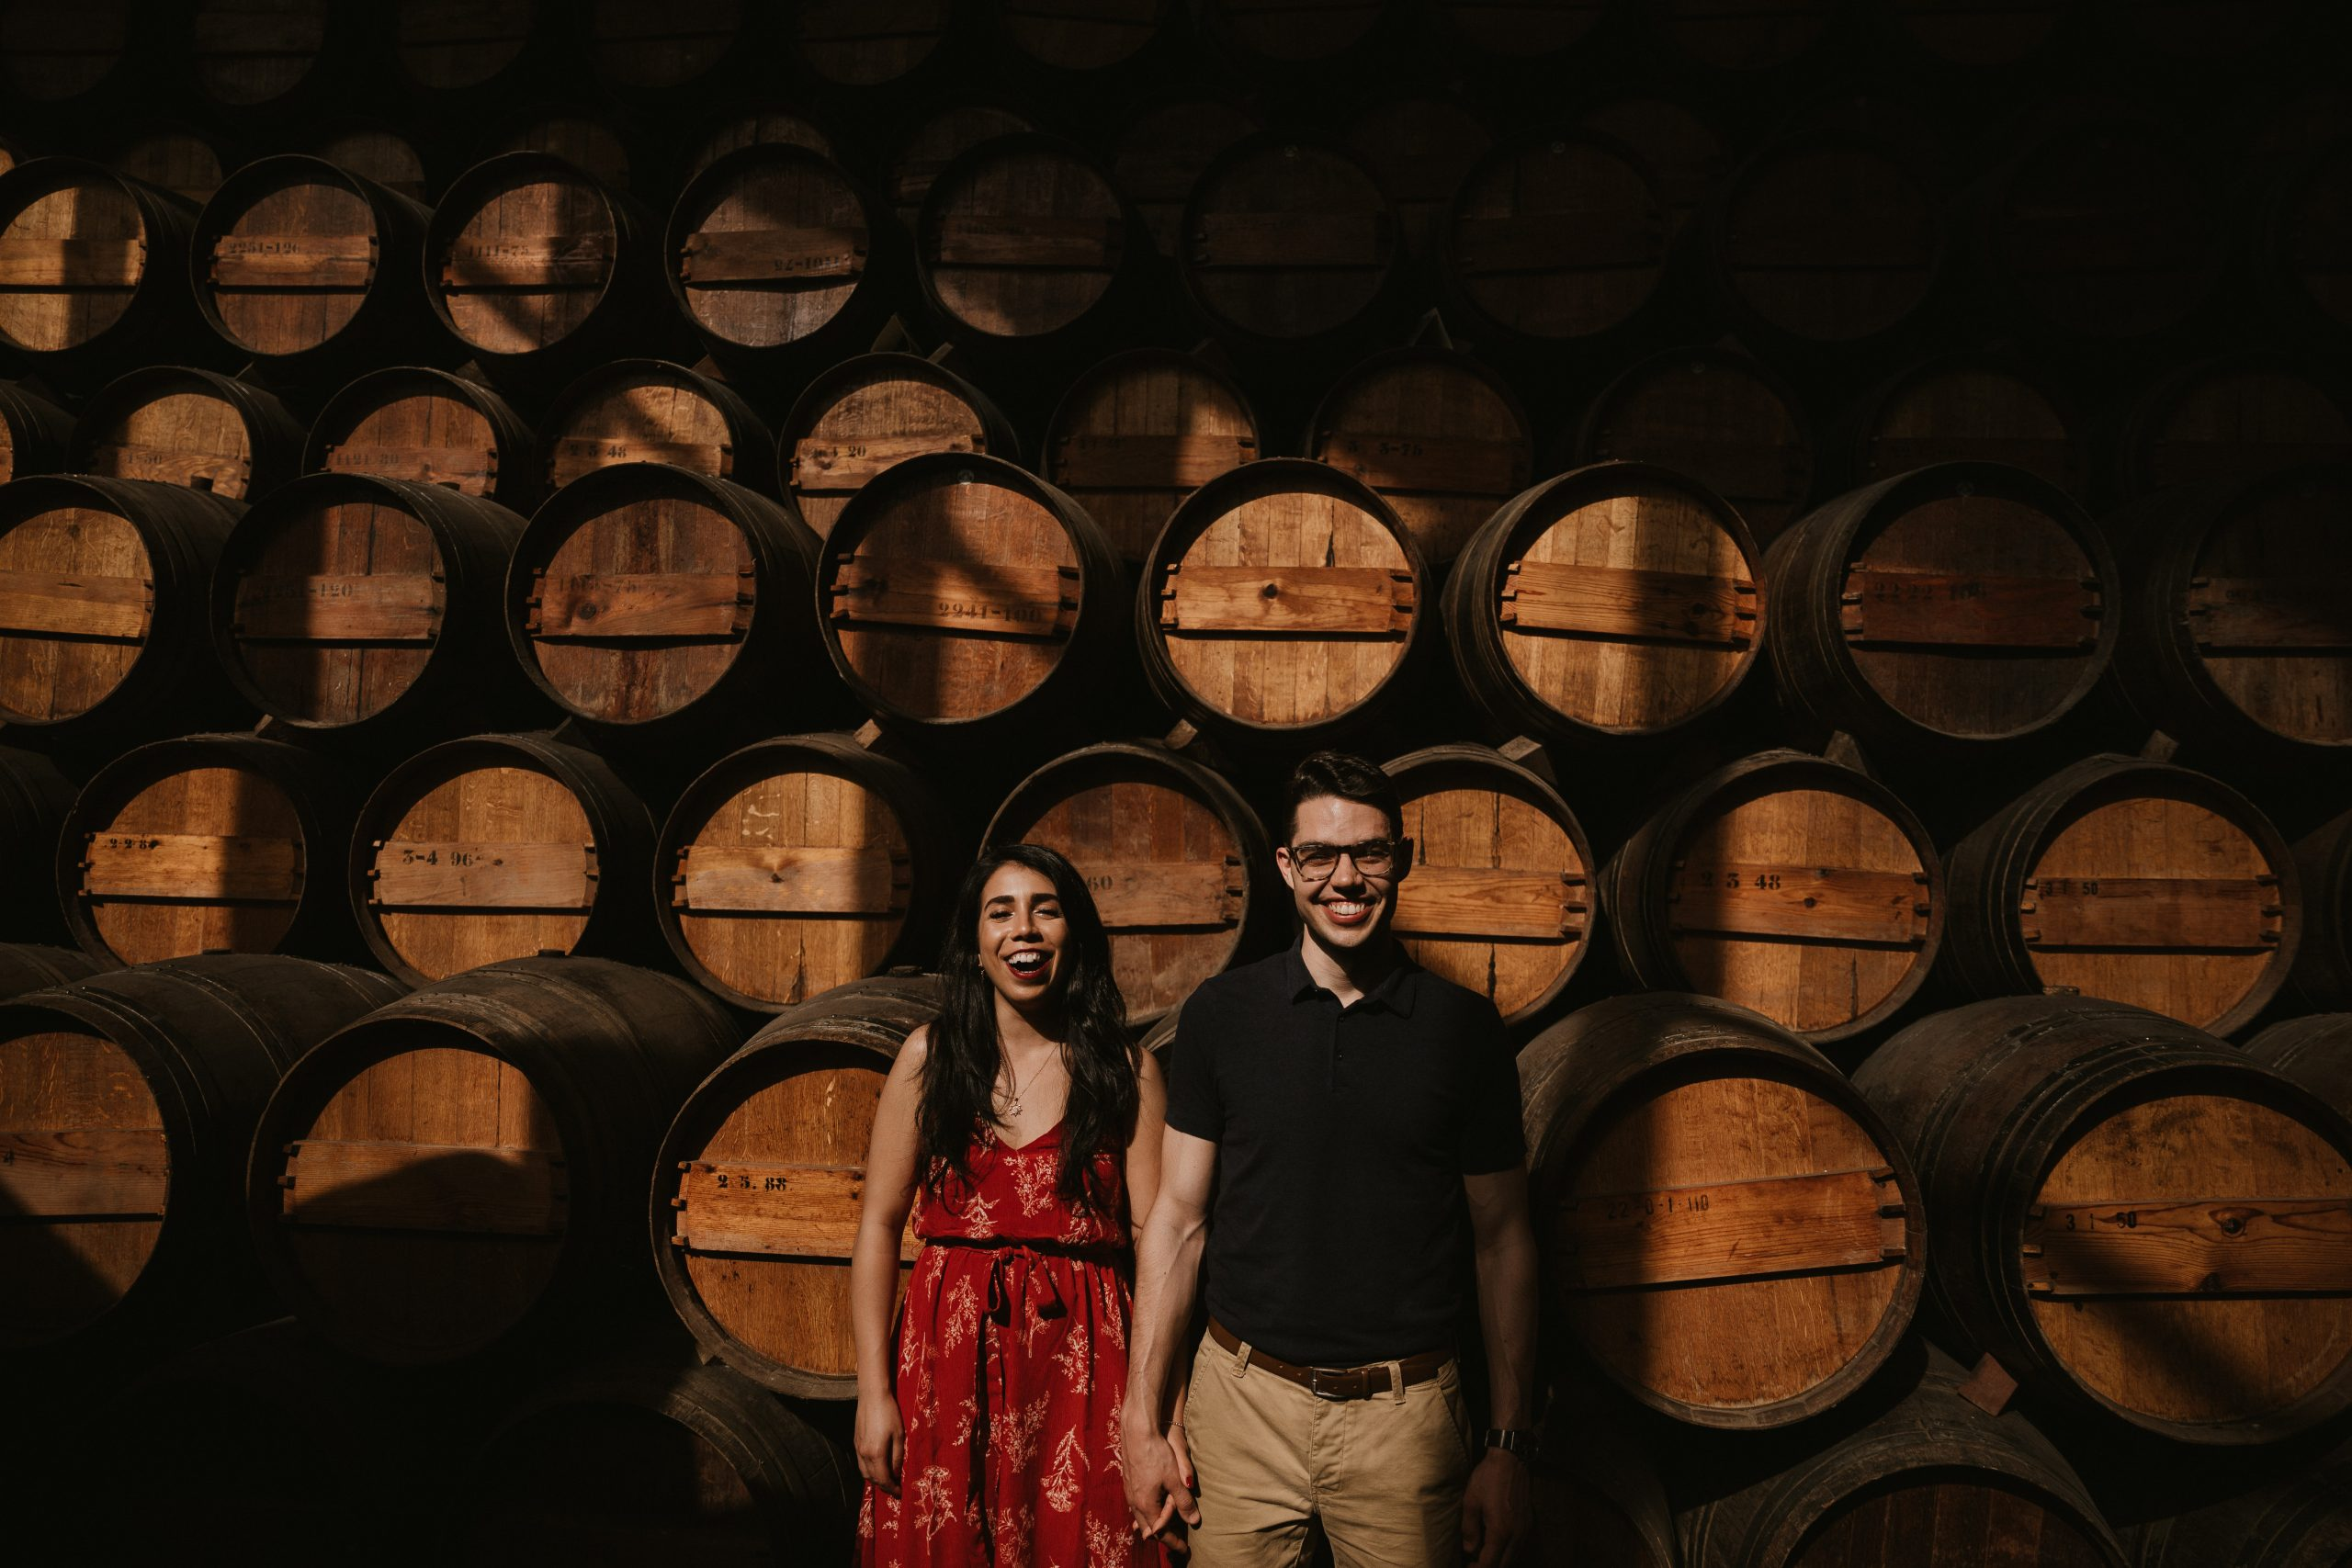 Alex and Meghan Callisto, owners of The Cottage by Callisto, standing side-by-side holding hands with wine barrels in the background.